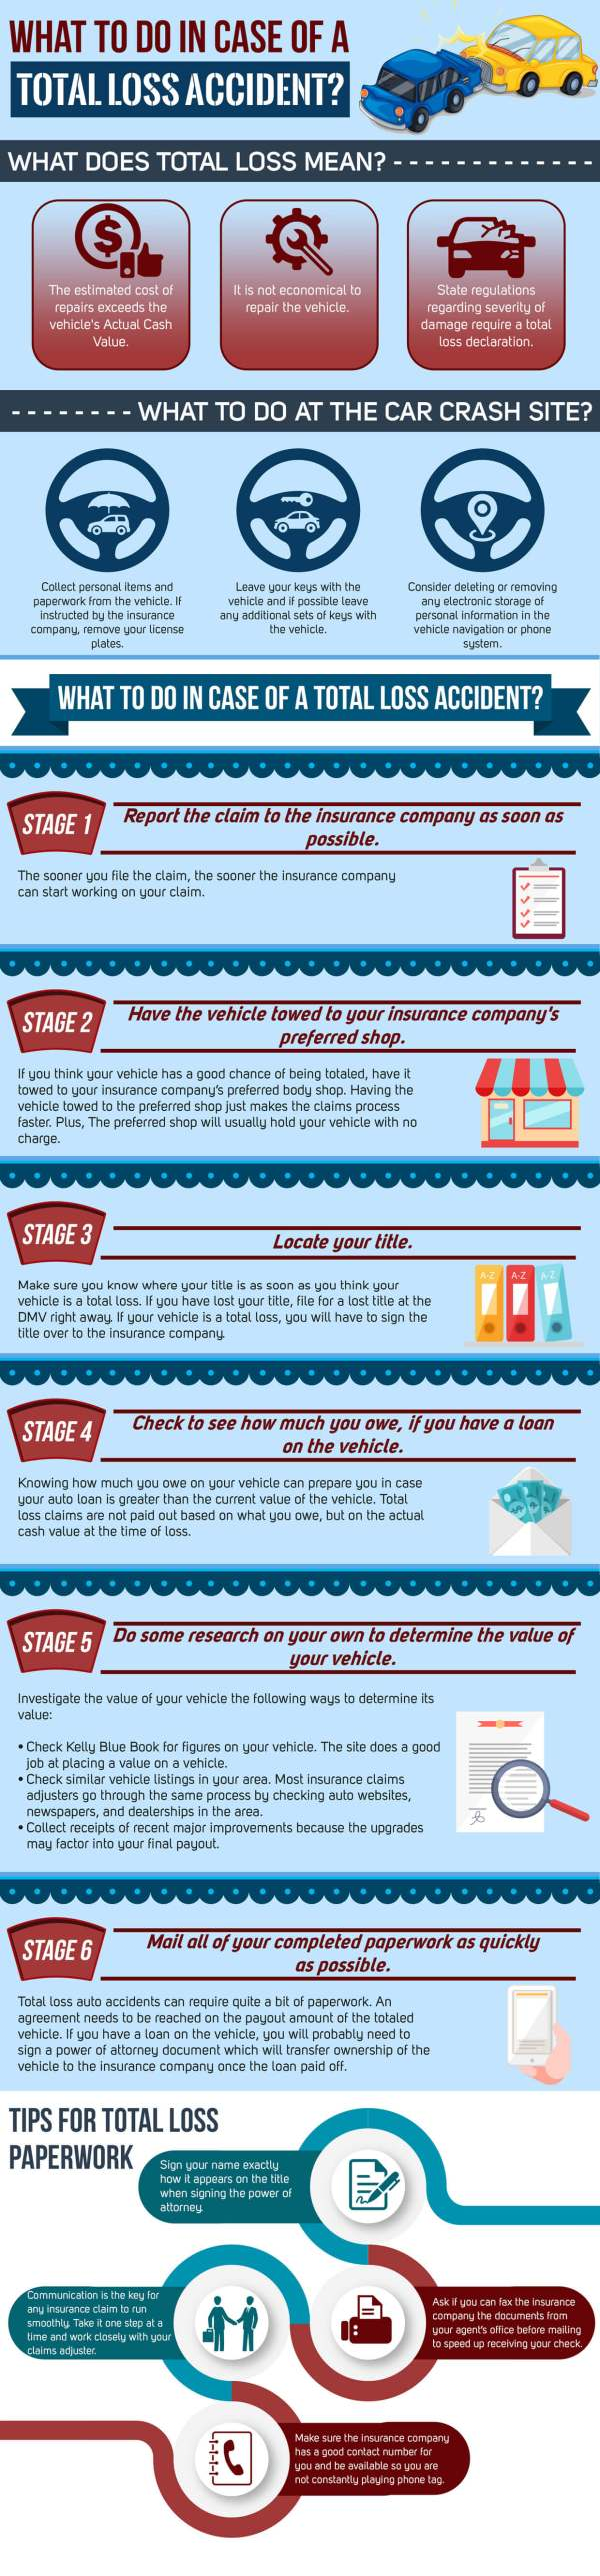 What-to-Do-in-Case-of-a-Total-Loss-Accident